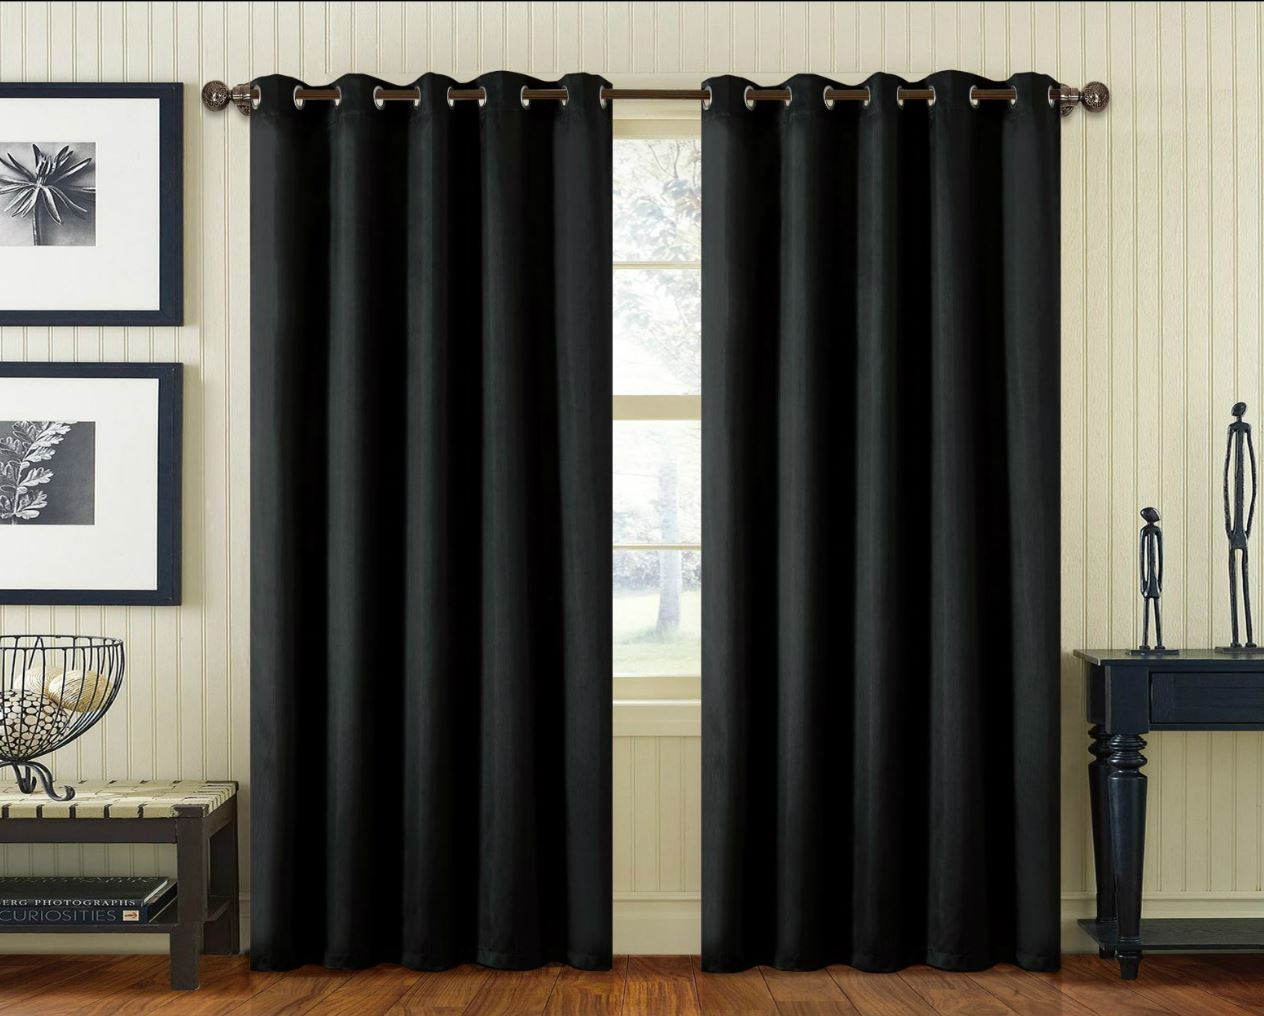 pair faux silk curtain ring top eyelet fully lined super. Black Bedroom Furniture Sets. Home Design Ideas